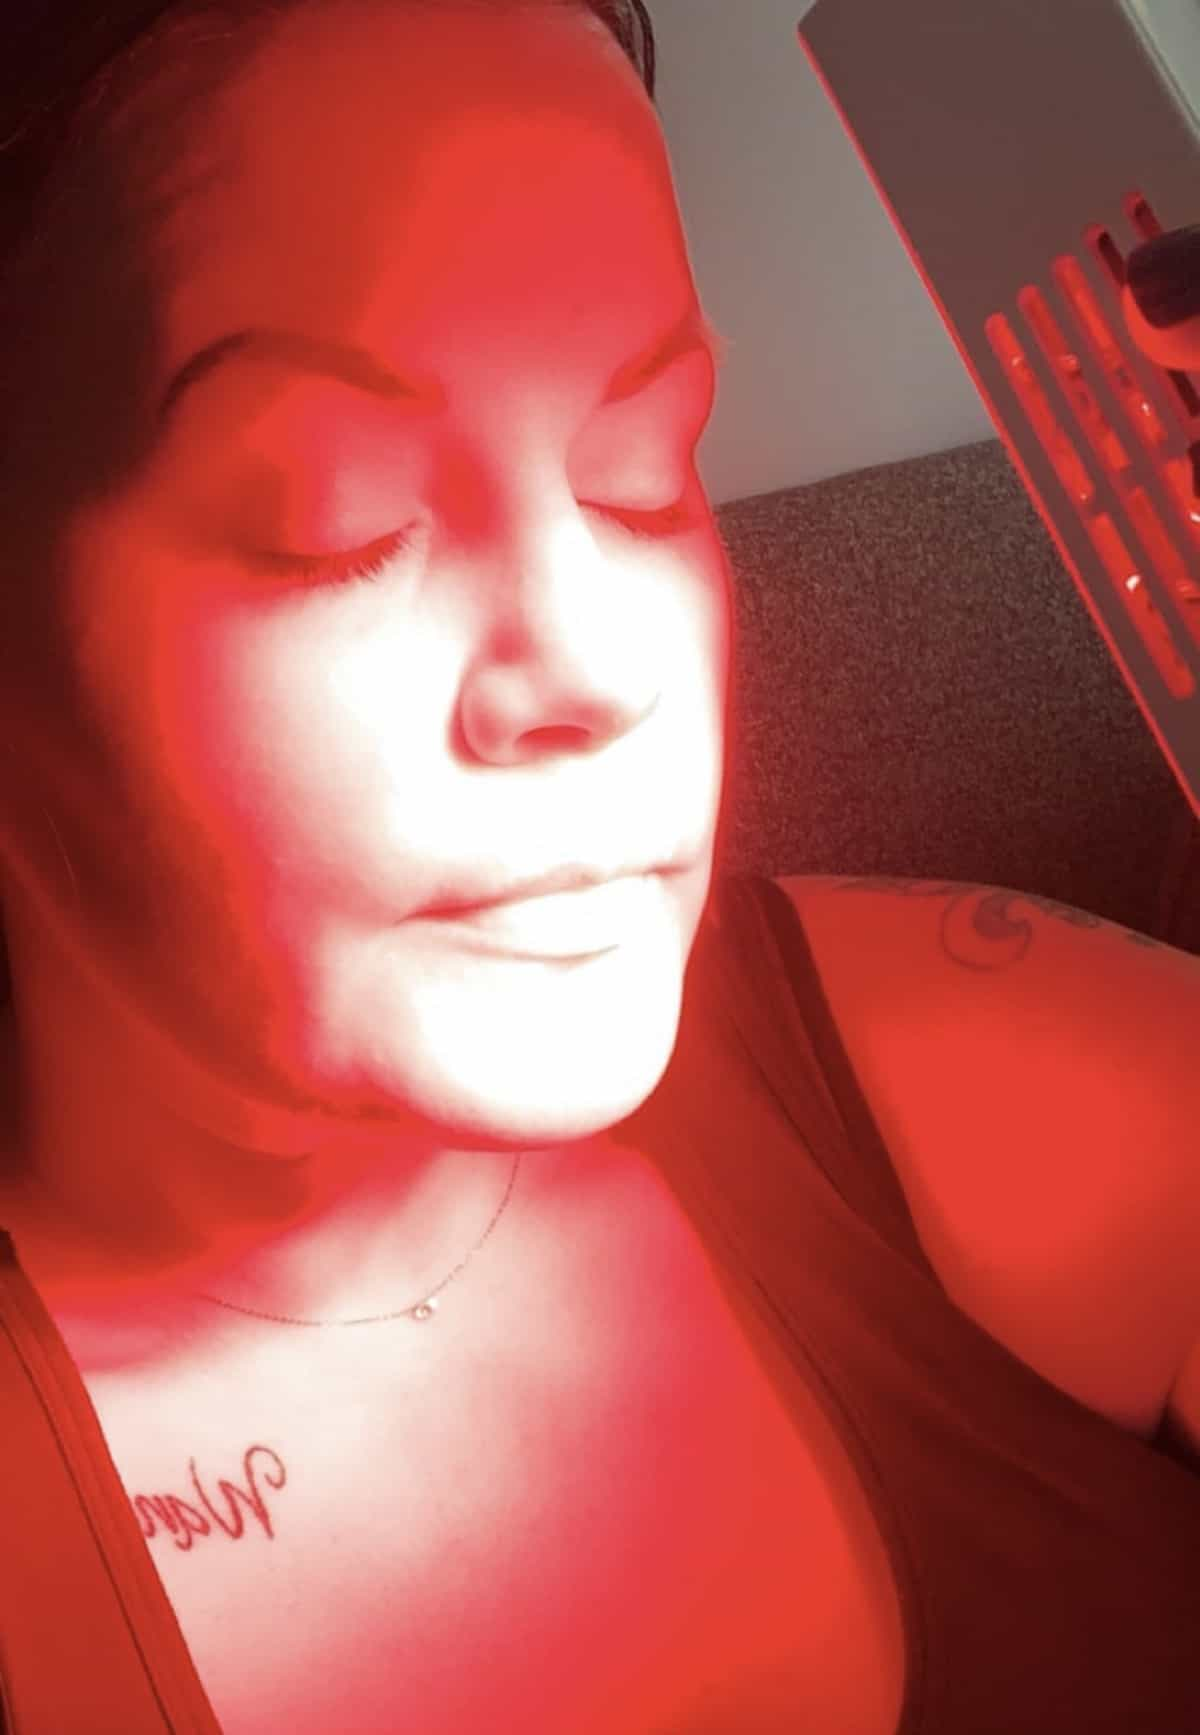 Women using a handheld red light therapy unit on her face